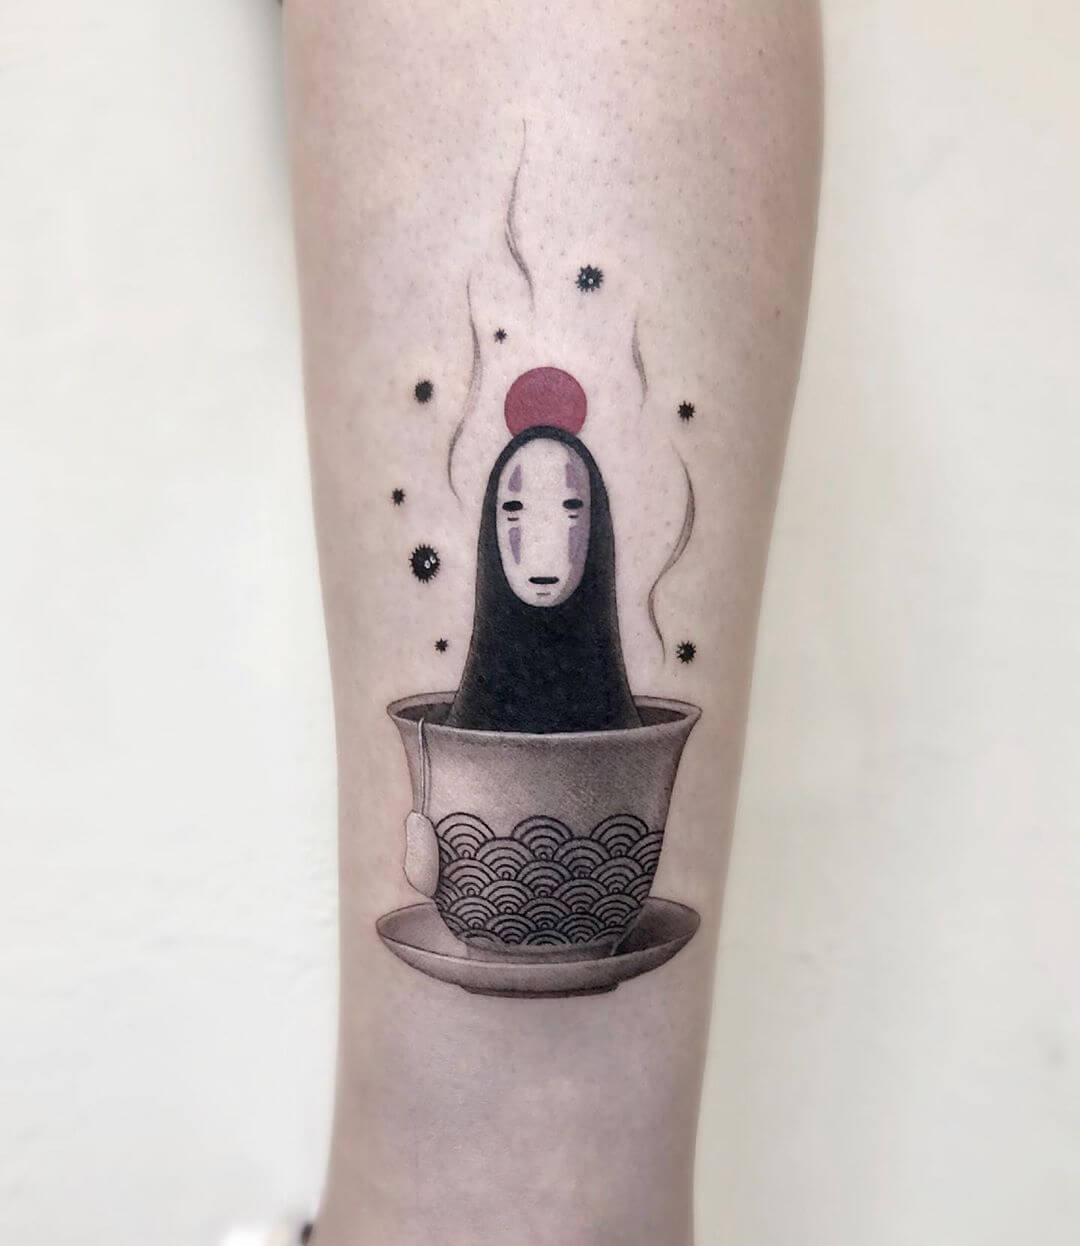 Tattoo showing Kaonashi from Spririted Away in a tea cup